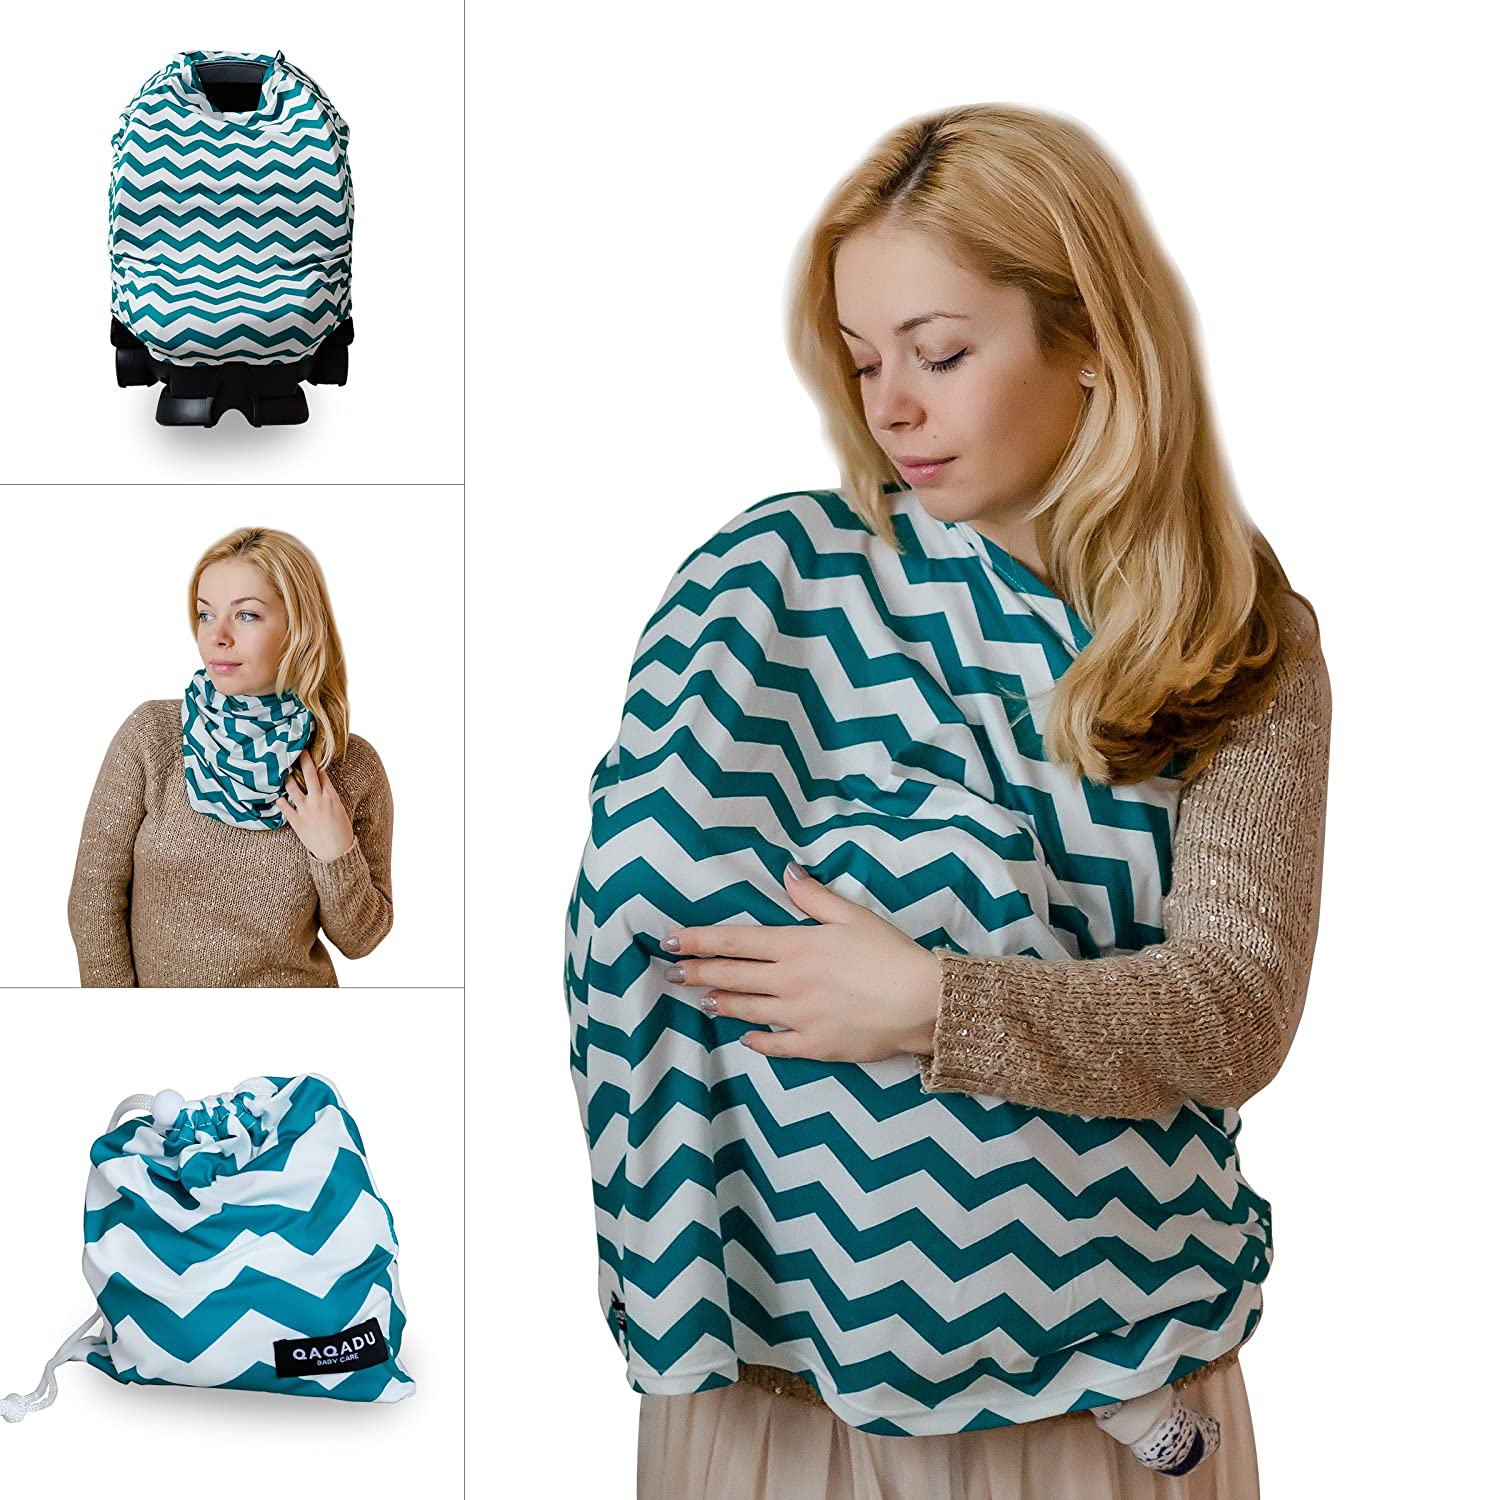 Nursing Breastfeeding Cover Scarf - Baby Car Seat Canopy - Nursing Pads, Pouch & Gift Pack Set - Shopping Cart, Stroller, Carseat Covers for Girls and Boys - Best Multi-Use Infinity Stretchy Shawl QAQADU